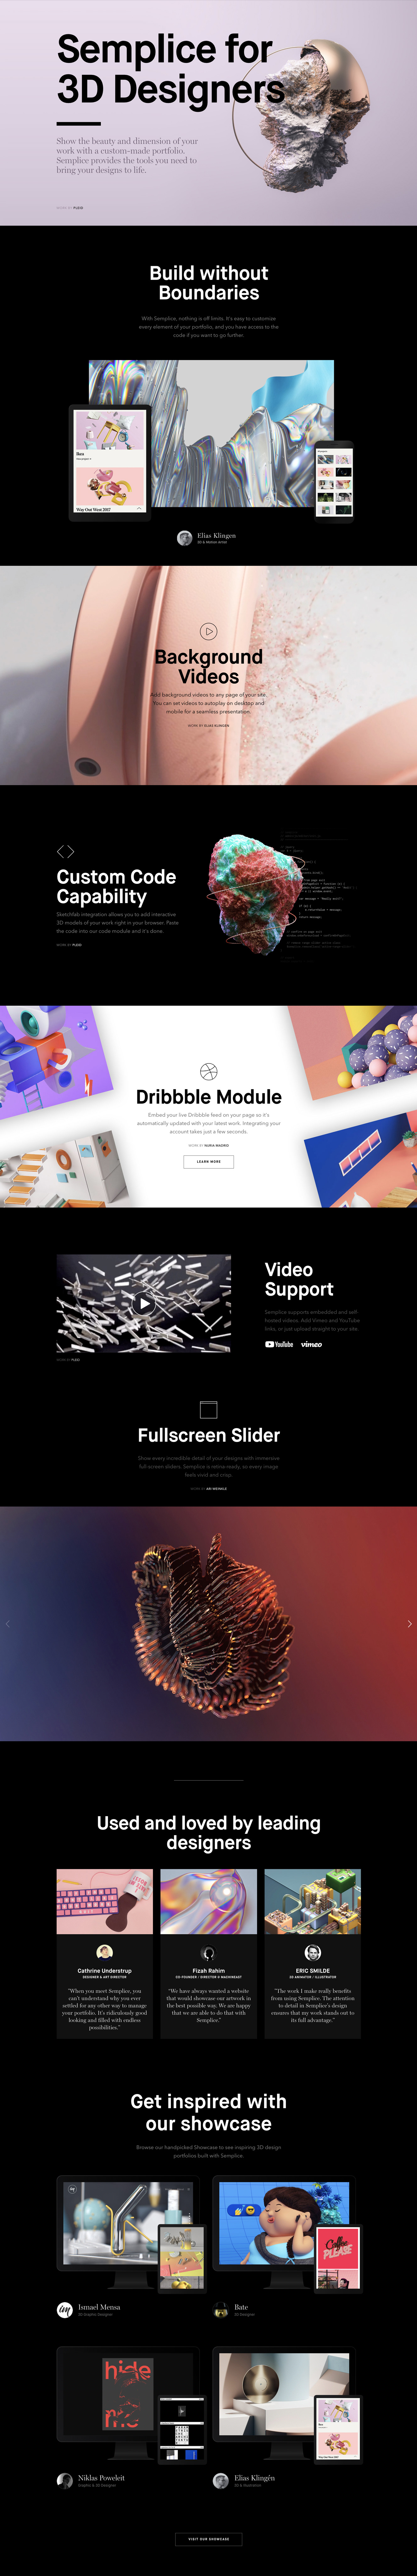 Semplice-for-3D-Designers Full Page